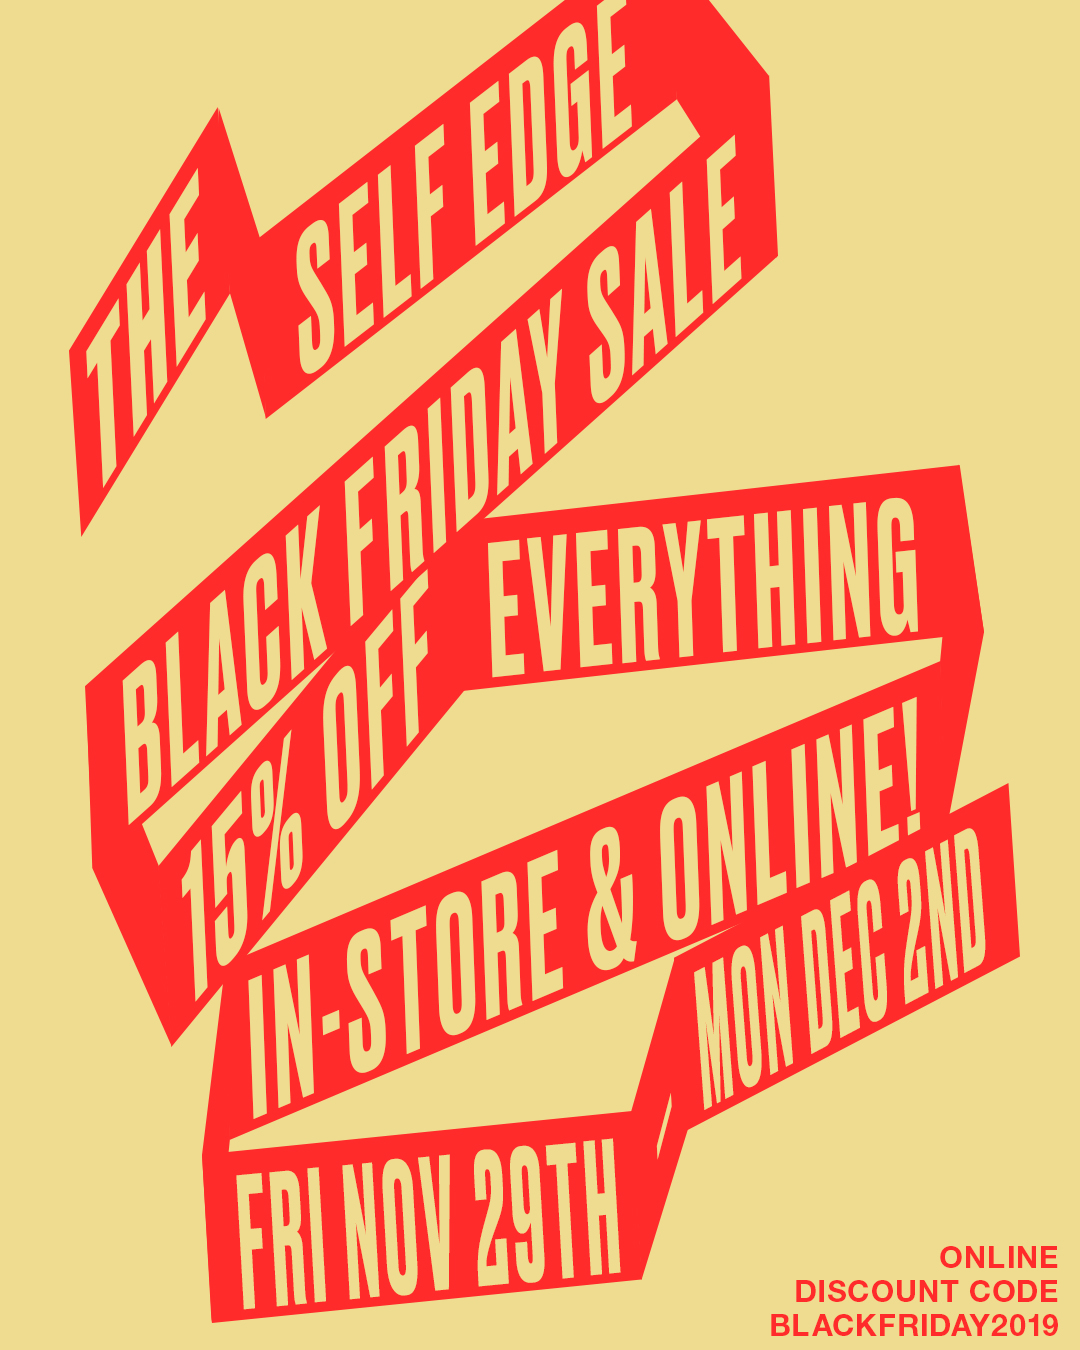 se-black-friday-2019-orange-1080x1350.jpg